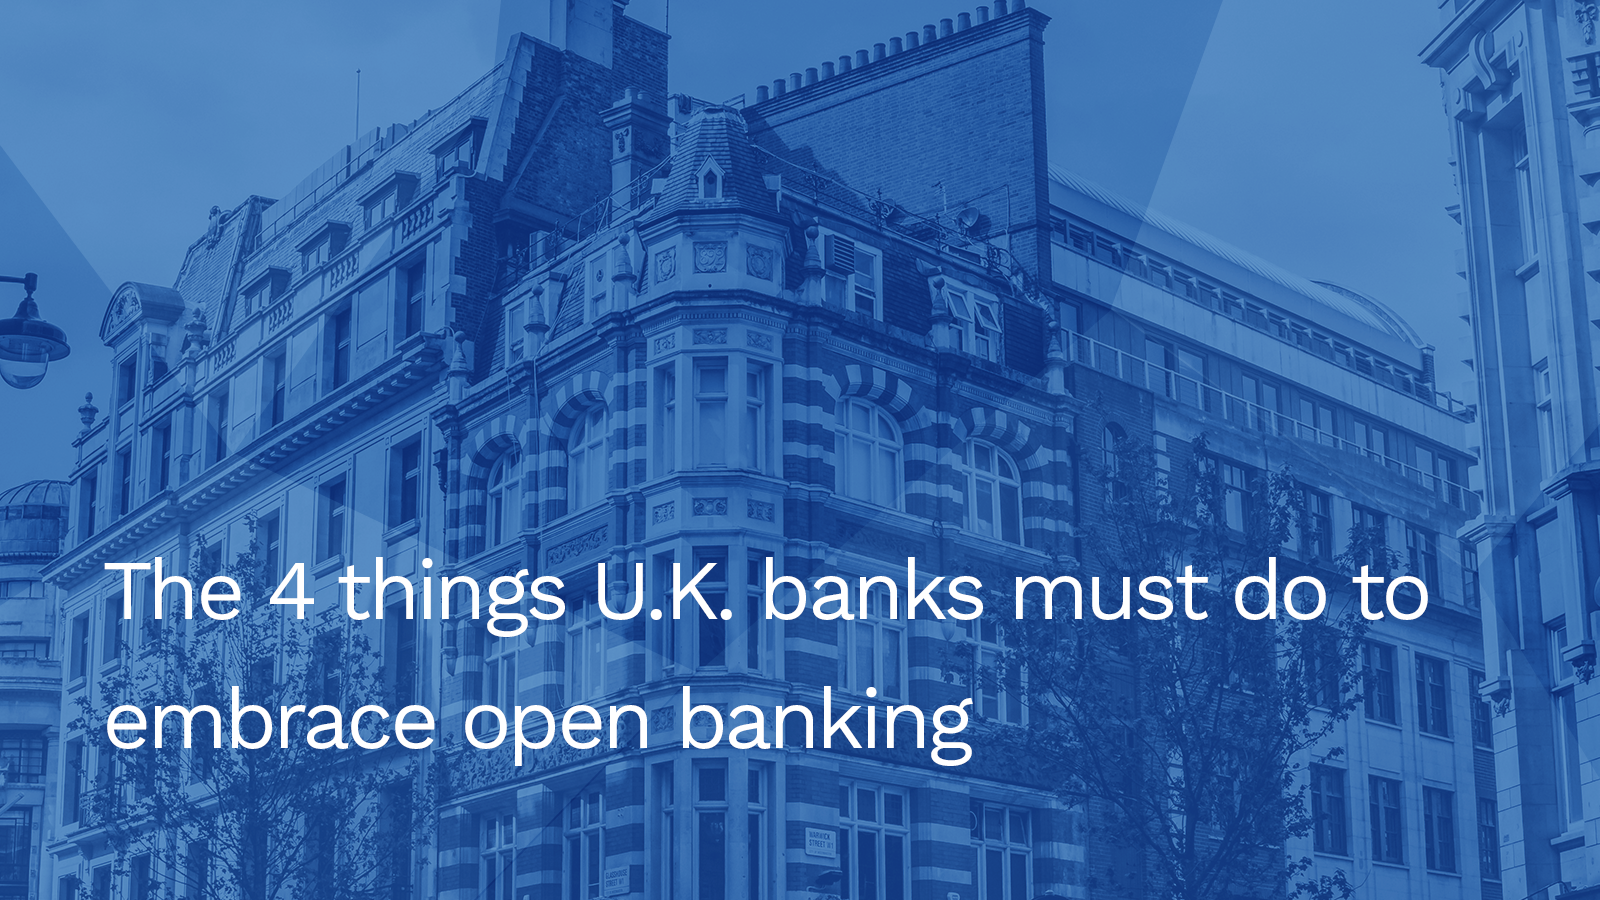 The 4 things U.K. banks must do to embrace open banking